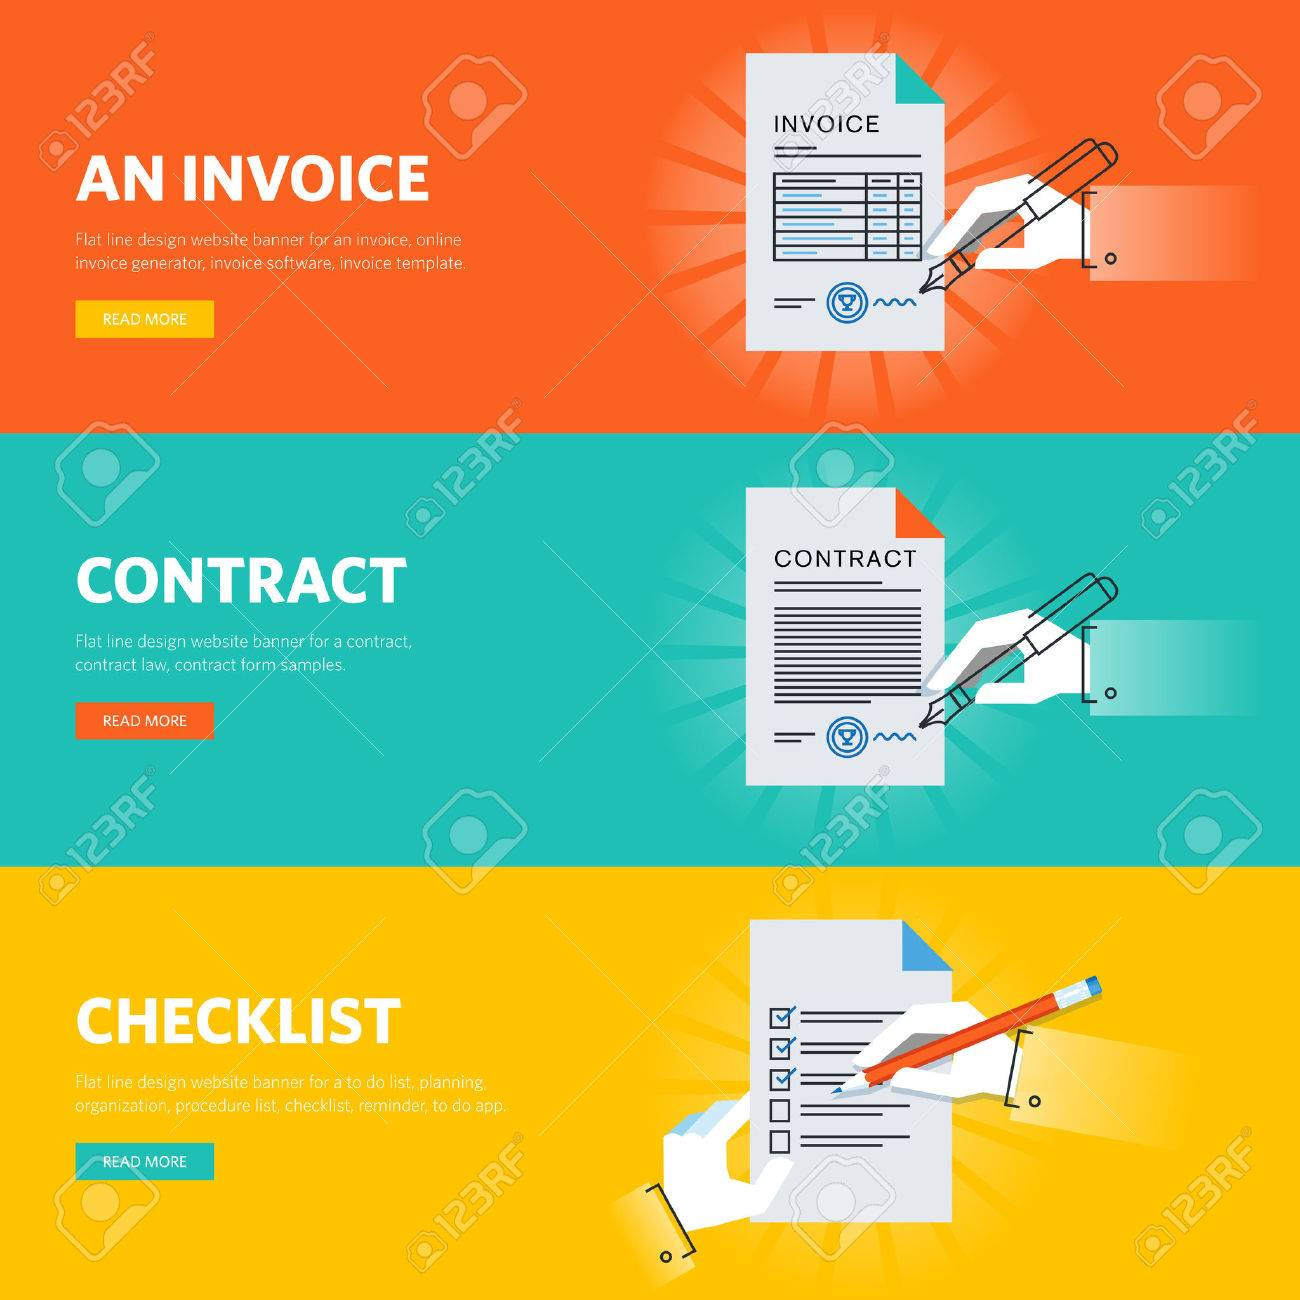 Set of flat line design web banners for business documentations, document form samples and templates, online document generator and app. - 54614320